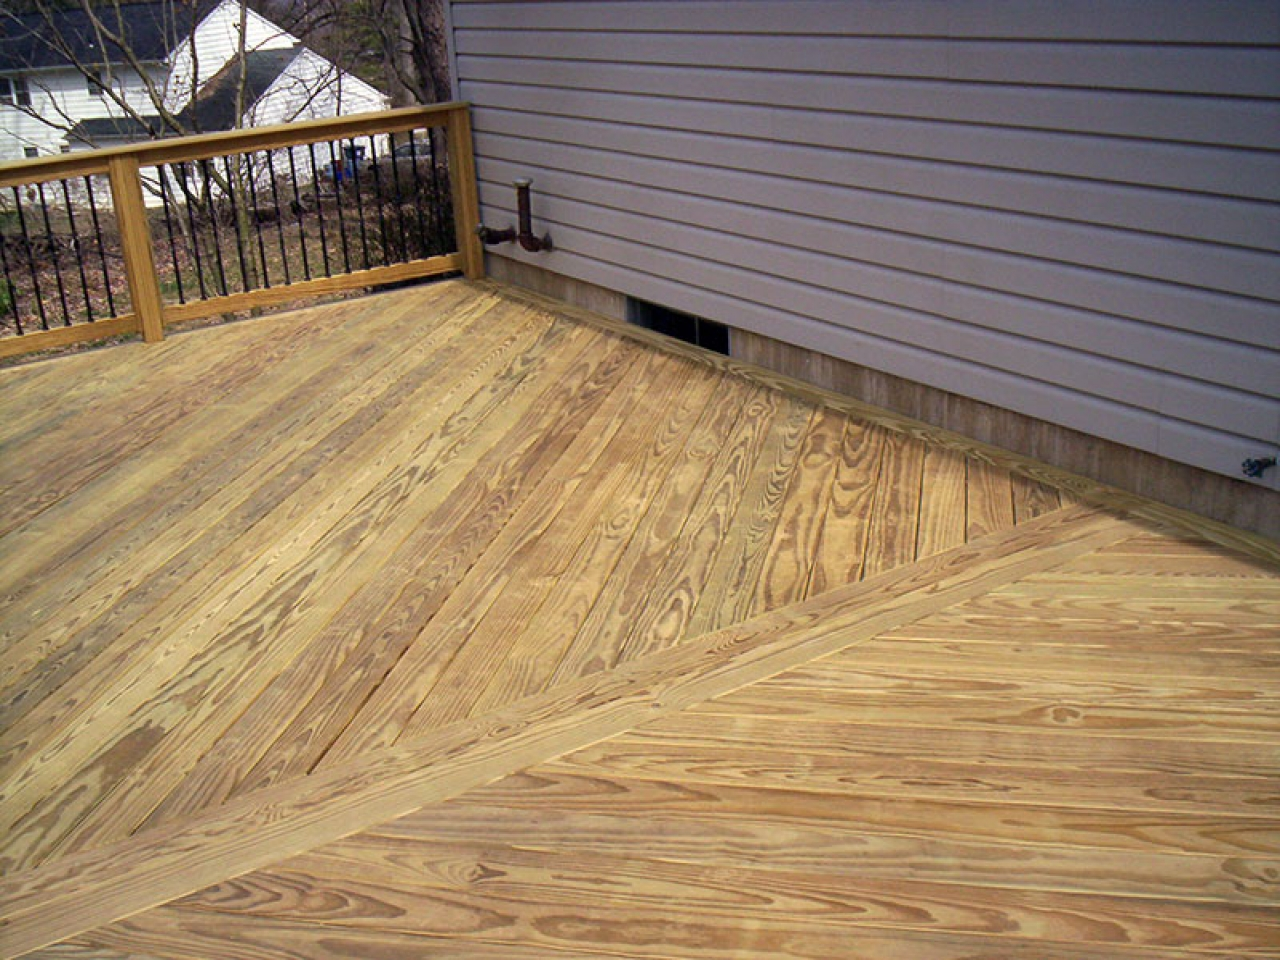 Cabot Deck Stain Deck Stains For Pressure Treated Wood